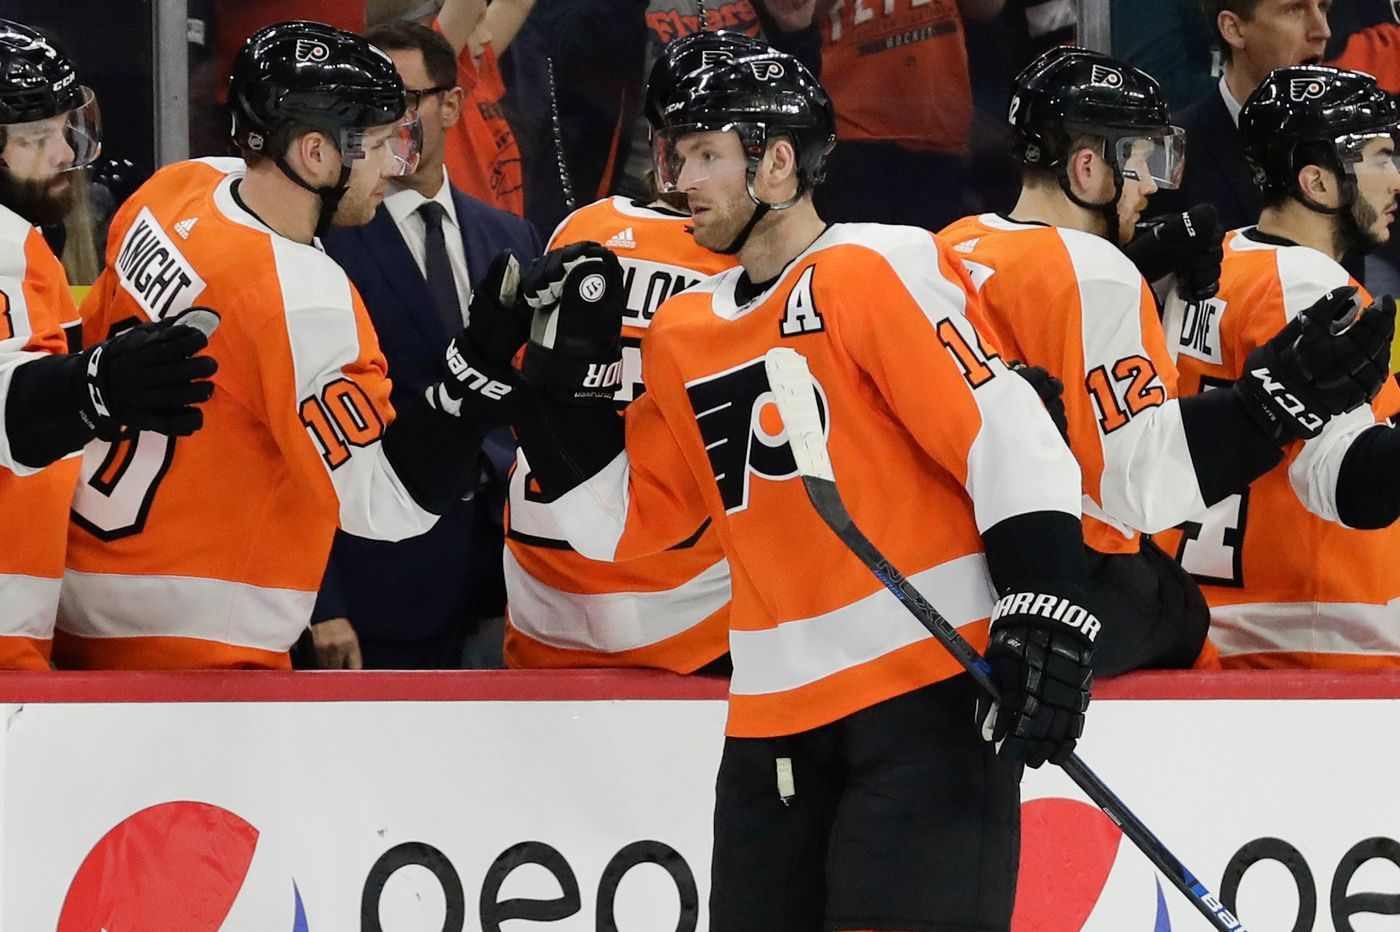 Sean Couturier is evidence that Ron Hextall's plan still can work for Flyers | Mike Sielski